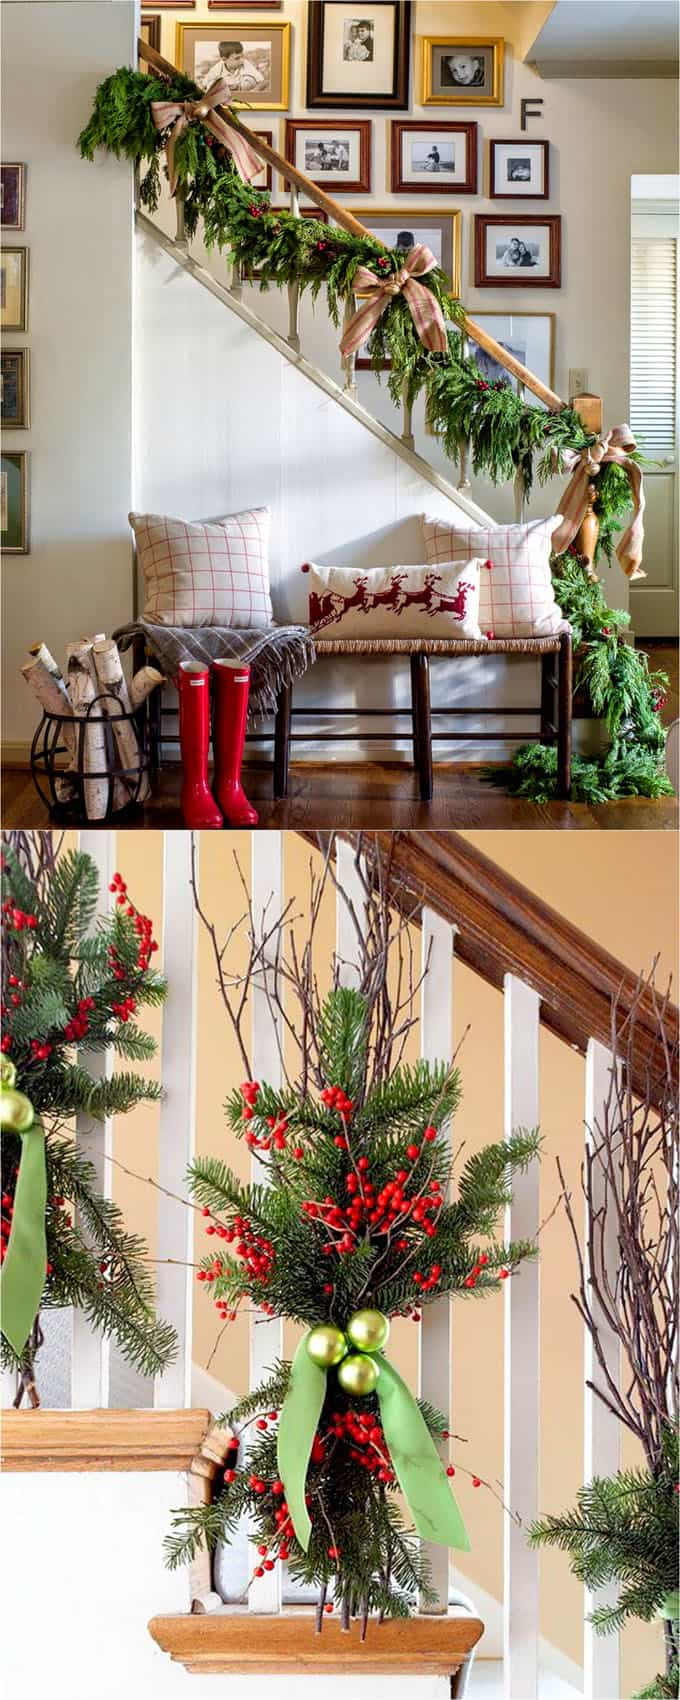 100 Favorite Christmas Decorating Ideas For Every Room In Your Home Part 1 A Piece Of Rainbow